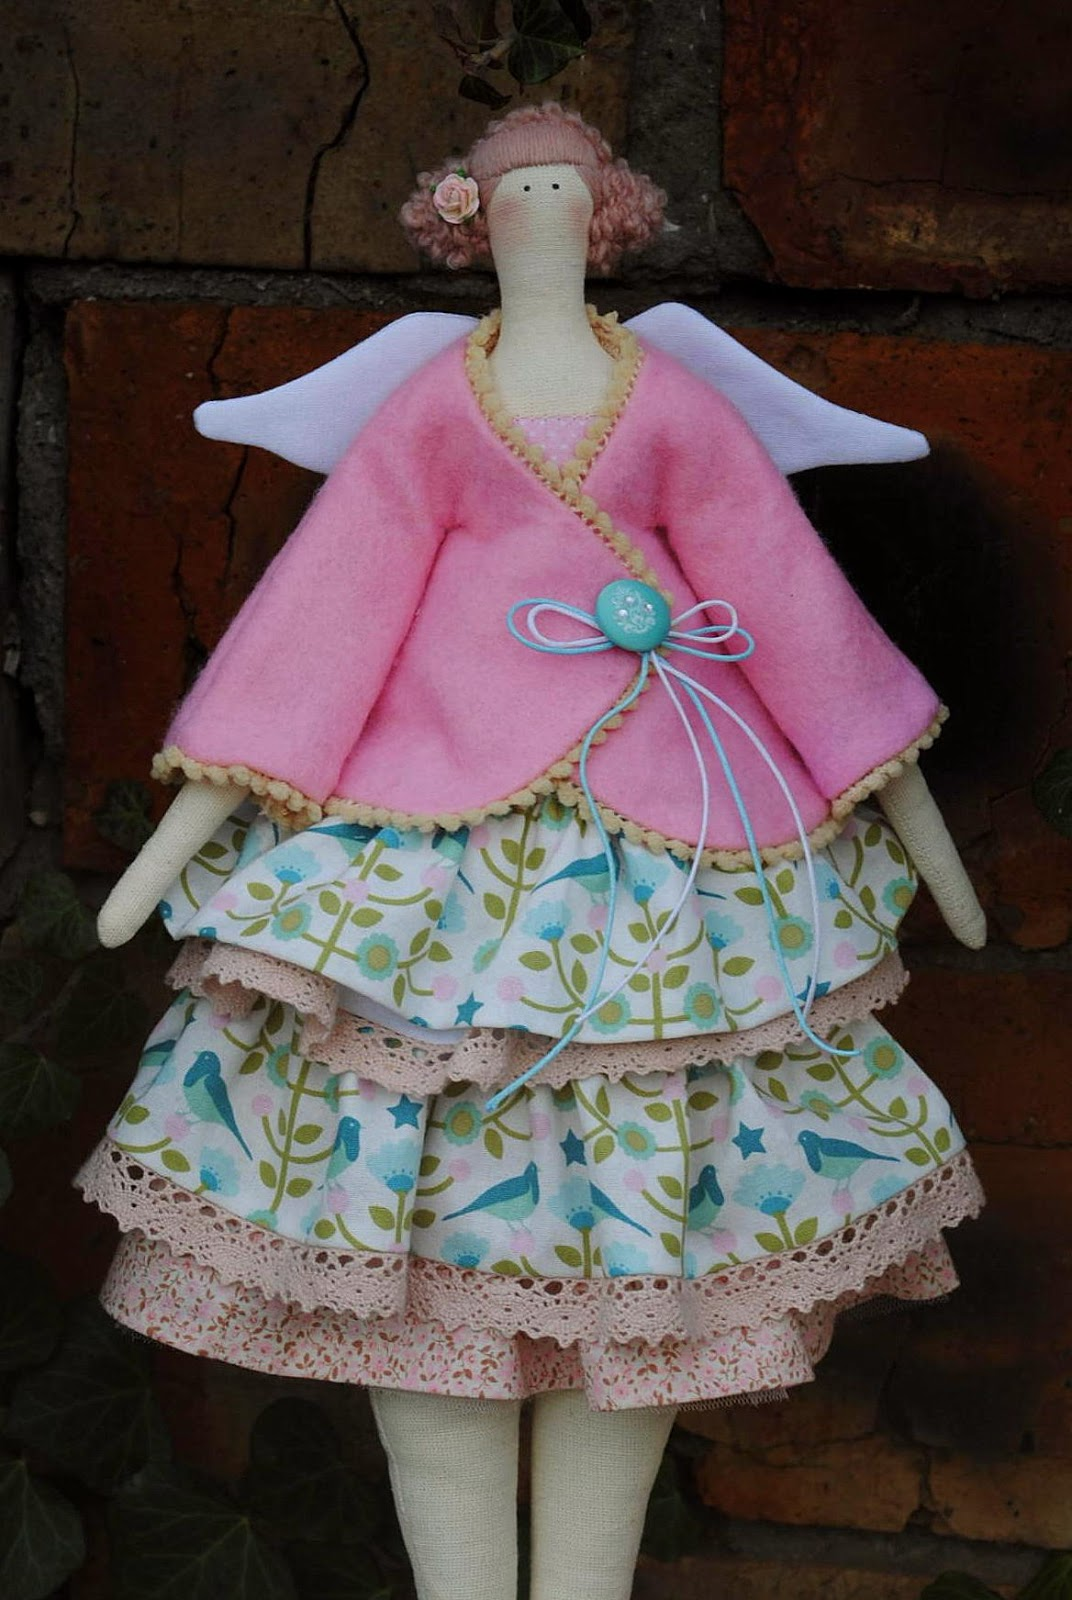 kids, baby, gift, sewing, girl, buy, handmade, natural, fairy, fairies, beautiful, doll, cotton, house, ivy, wings, tilda